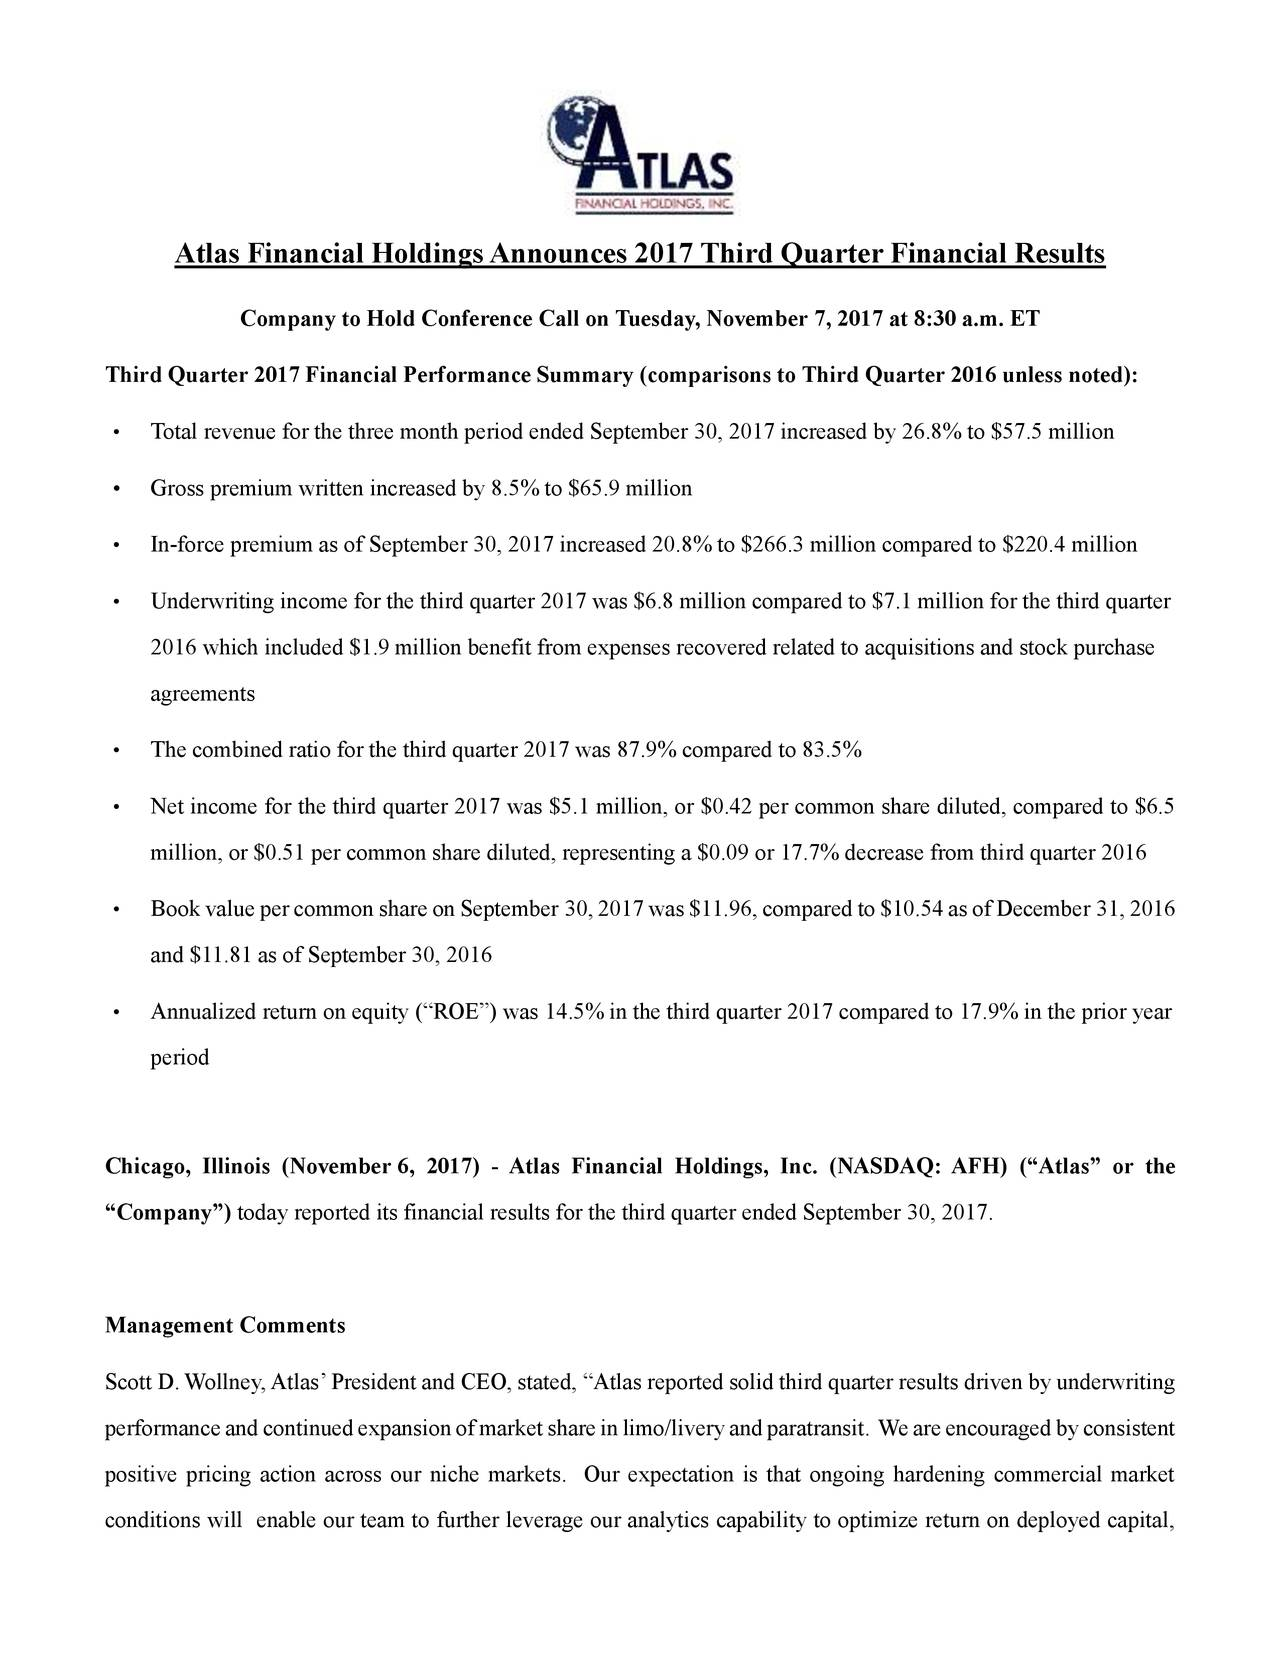 """Company to Hold Conference Call on Tuesday, November 7, 2017 at 8:30 a.m. ET Third Quarter 2017 Financial Performance Summary (comparisons to Third Quarter 2016 unless noted): • Total revenue for the three month period ended September 30, 2017 increased by 26.8% to $57.5 million • Gross premium written increased by 8.5% to $65.9 million • In-force premium as of September 30, 2017 increased 20.8% to $266.3 million compared to $220.4 million • Underwriting income for the third quarter 2017 was $6.8 million compared to $7.1 million for the third quarter 2016 which included $1.9 million benefit from expenses recovered related to acquisitions and stock purchase agreements • The combined ratio for the third quarter 2017 was 87.9% compared to 83.5% • Net income for the third quarter 2017 was $5.1 million, or $0.42 per common share diluted, compared to $6.5 million, or $0.51 per common share diluted, representing a $0.09 or 17.7% decrease from third quarter 2016 • Bookvalue per common share on September 30,2017was $11.96, compared to $10.54 as of December 31,2016 and $11.81 as of September 30, 2016 • Annualized return on equity (""""ROE"""") was 14.5% in the third quarter 2017 compared to 17.9% in the prior year period Chicago, Illinois (November 6, 2017) - Atlas Financial Holdings, Inc. (NASDAQ: AFH) (""""Atlas"""" or the """"Company"""") today reported its financial results for the third quarter ended September 30, 2017. Management Comments Scott D. Wollney,Atlas'President and CEO, stated, """"Atlas reported solid third quarter results driven by underwriting performanceandcontinuedexpansionofmarket shareinlimo/liveryandparatransit. Weareencouragedbyconsistent positive pricing action across our niche markets. Our expectation is that ongoing hardening commercial market conditions will enable our team to further leverage our analytics capability to optimize return on deployed capital,"""